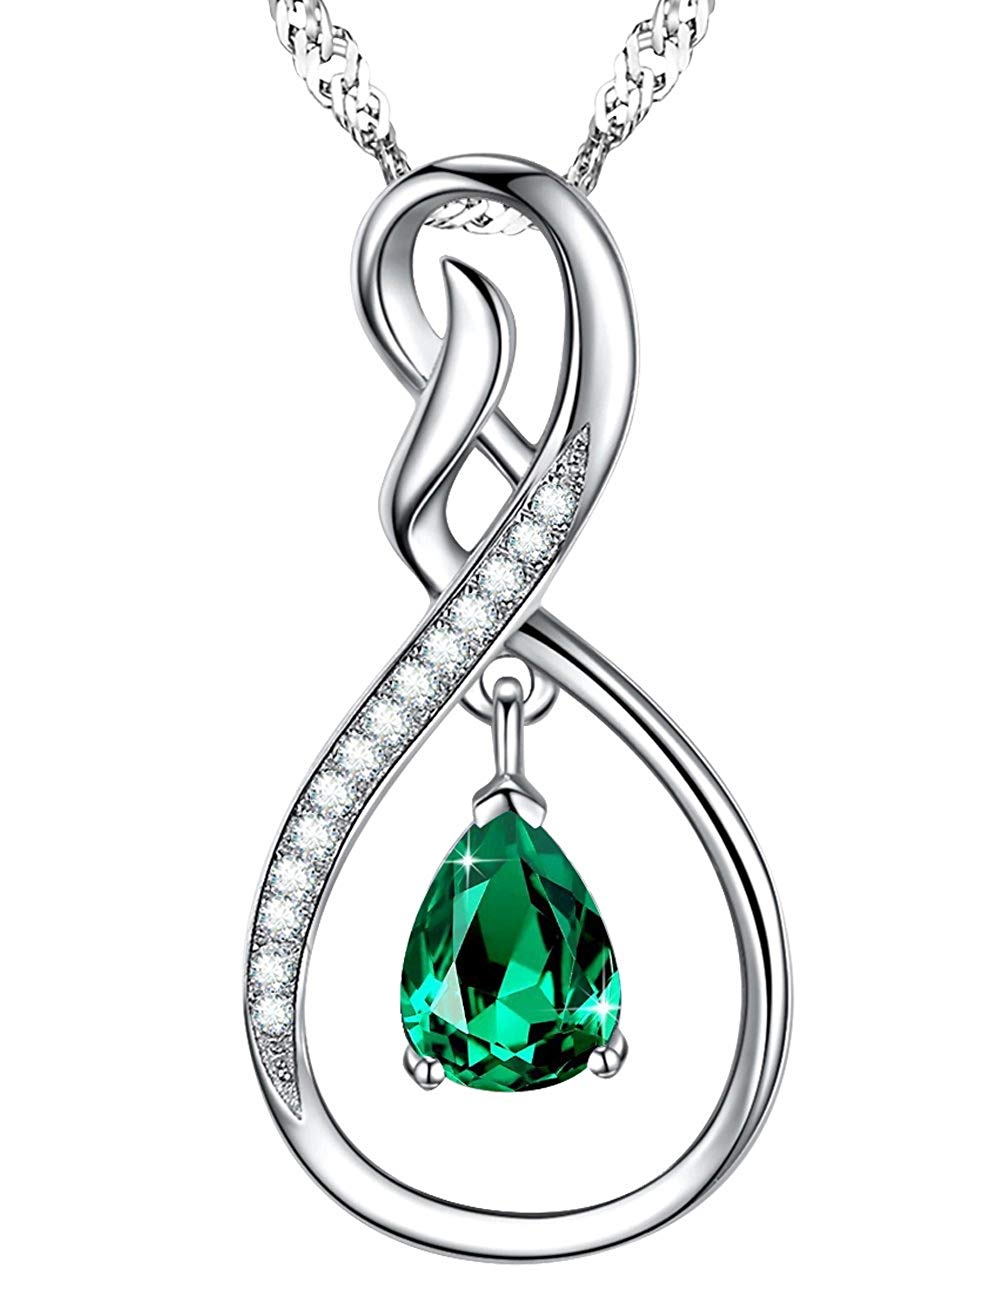 1000x1300 Jewelry Gift Green Emerald Necklace Charm Infinity